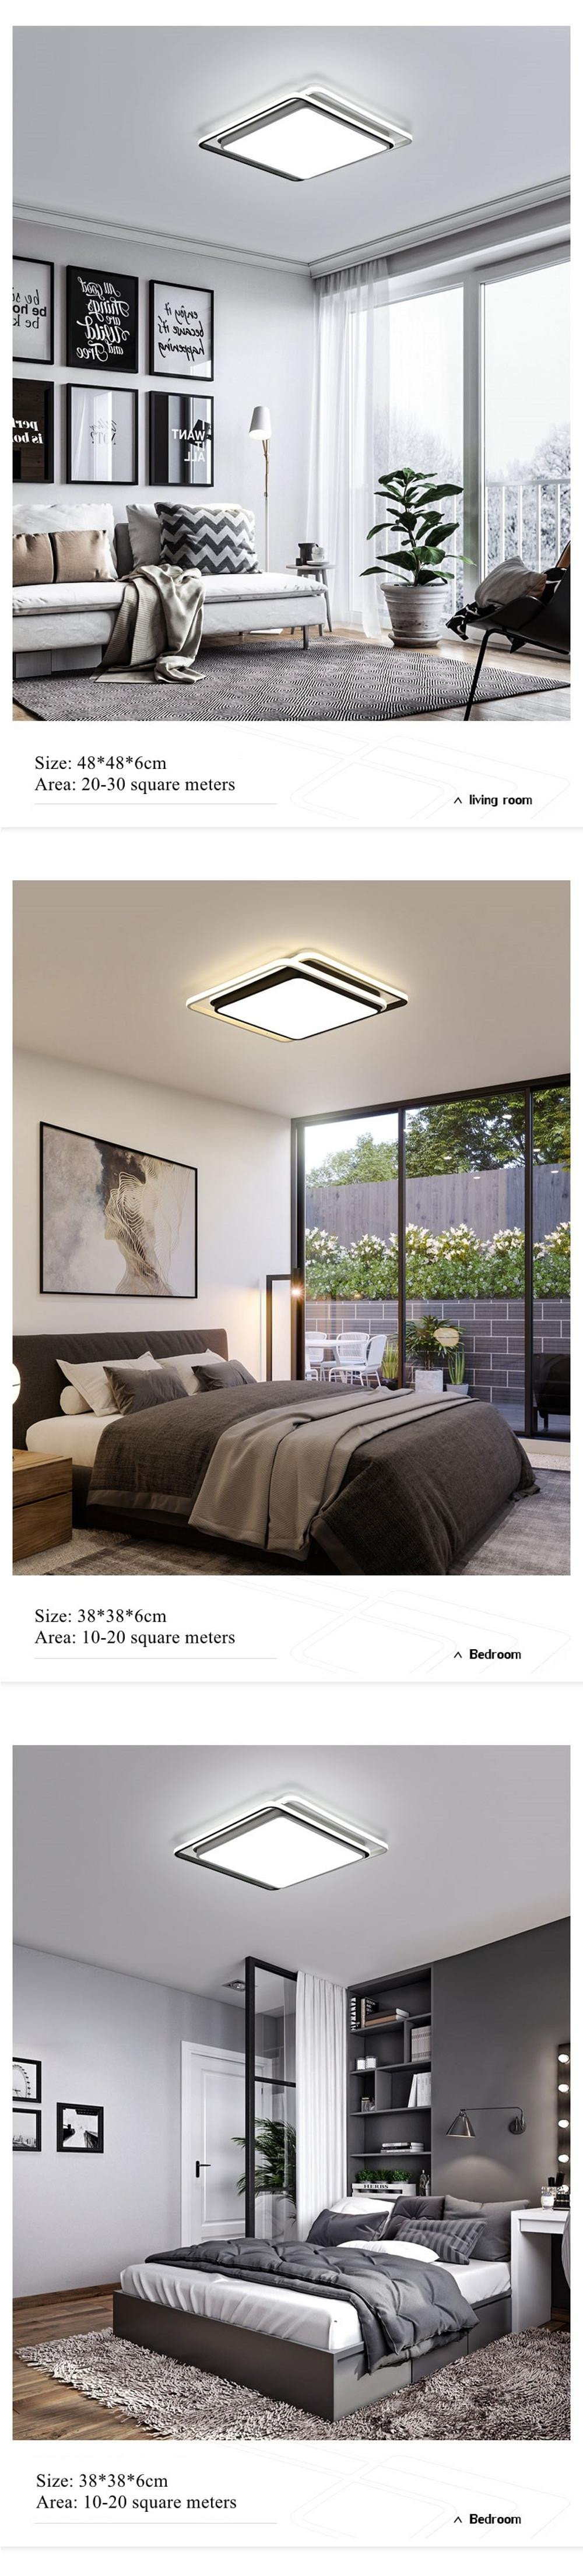 Modern Bedroom Ceiling Light Awesome Us $92 0 Off Dar Surface Mounted Square Ceiling Lights Black White Led Ceiling Light Modern Lamp Living Room Lighting Plafon Led Para Techo In